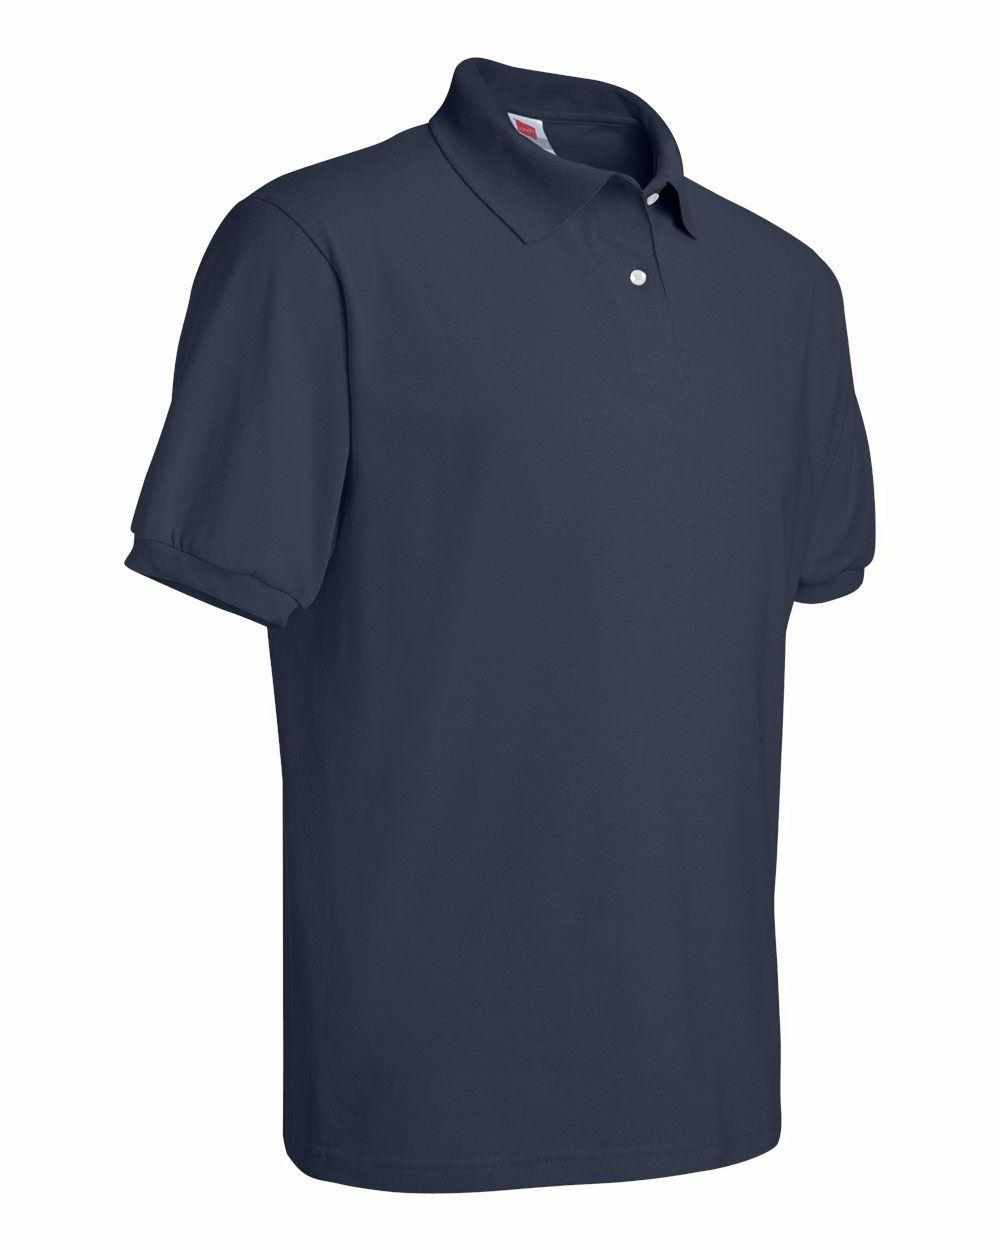 Hanes Tee Blended Jersey Sport Mens Polo S-6XL 054X